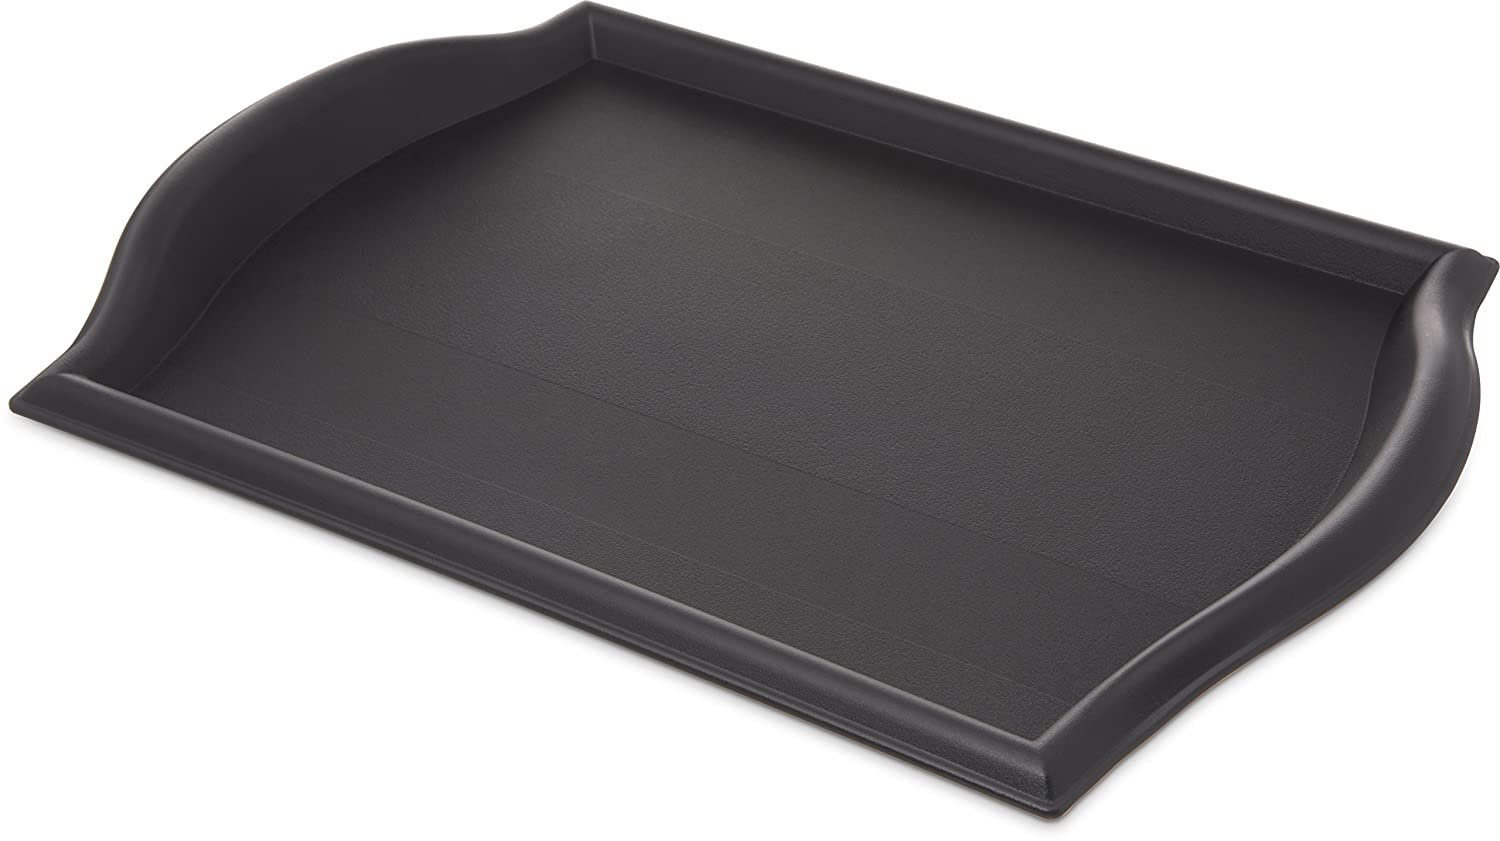 "Carlisle 1217BT03 Bistro Plastic Cafe Tray, 17"" x 12"", Black (Pack of 12)"